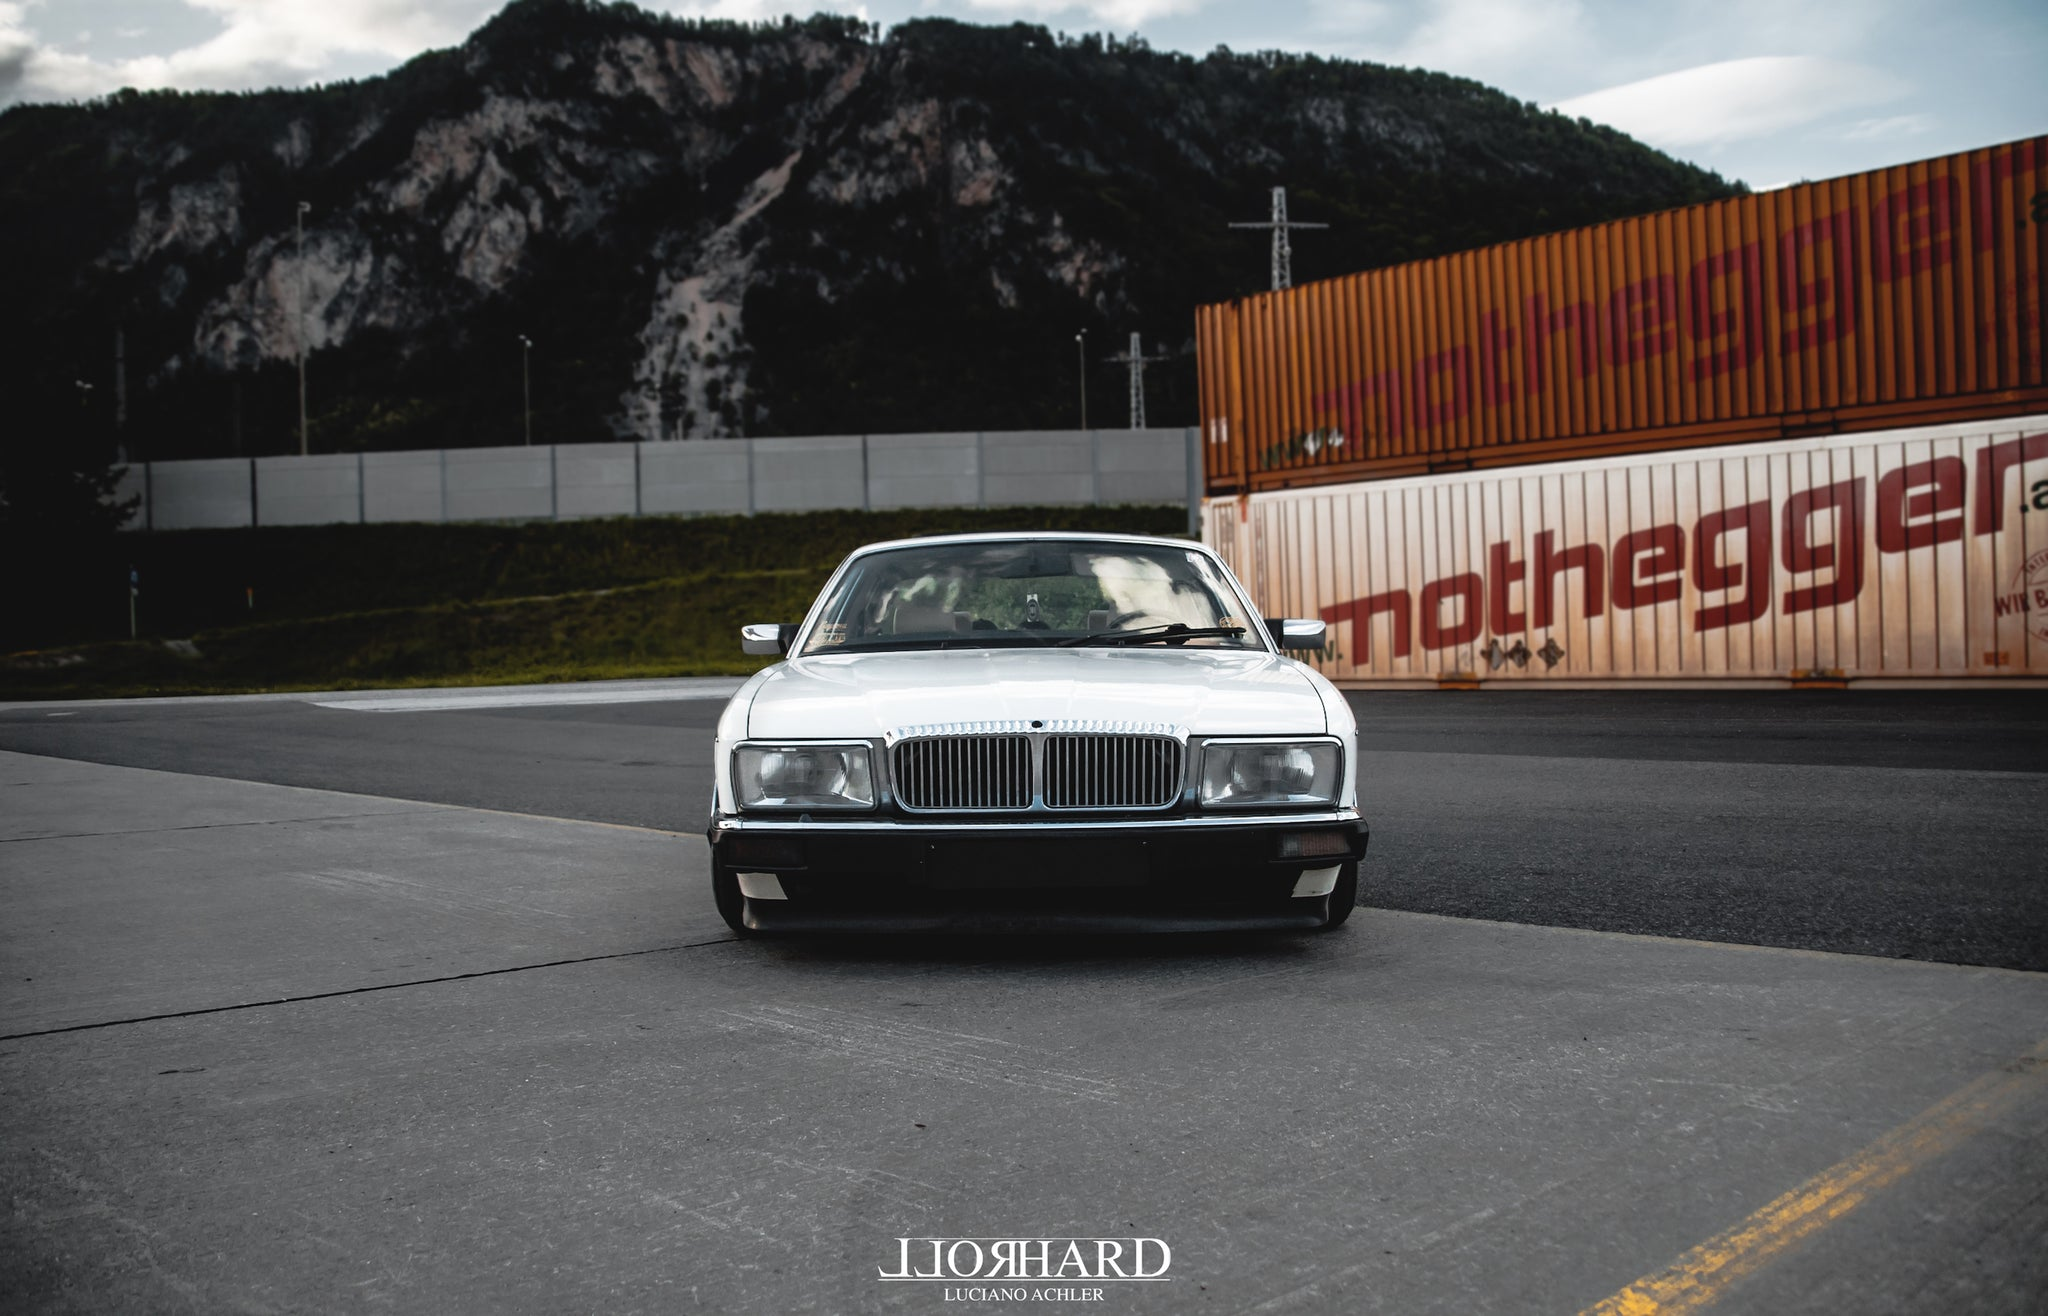 RollHard Feature - 1989 Daimler Jaguar XJ40 4.0 Sport - Epsilon Wheels, low, custom suspension, low jaguar, slam sanctuary, rollhard belgium, wortherseetreffen,